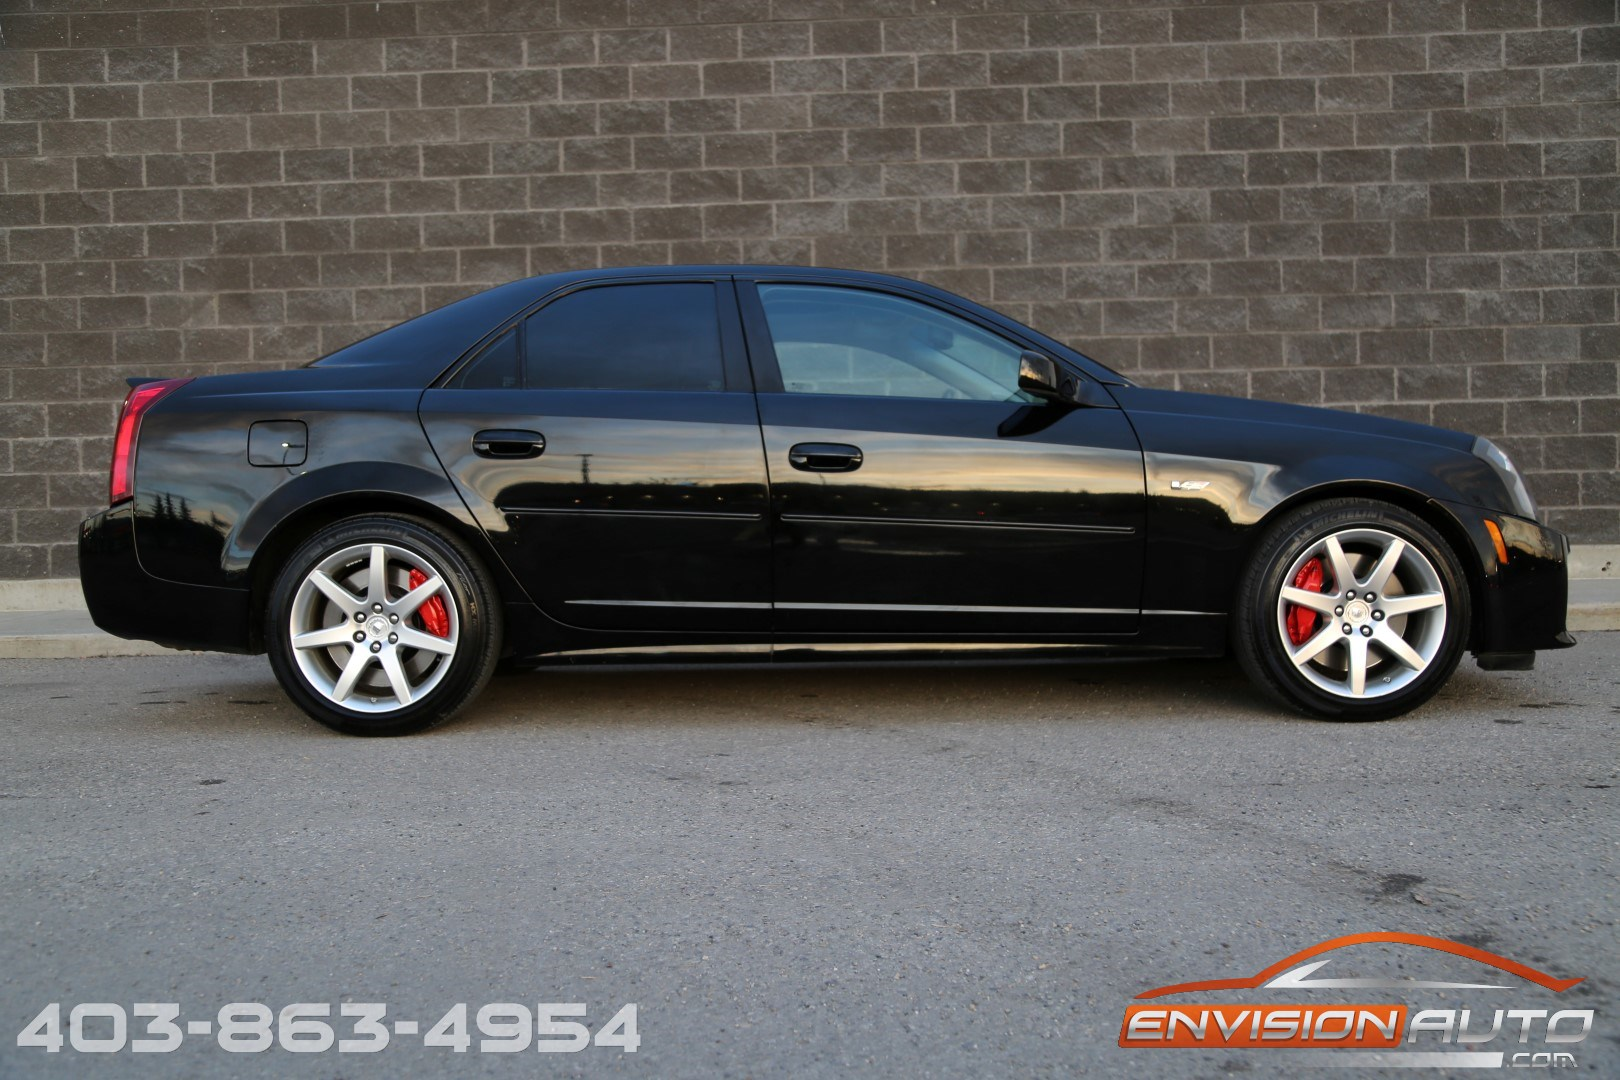 Low Down Payment Car Insurance >> 2005 Cadillac CTS-V SEDAN \ RARE 6 SPEED MANUAL \ ONLY 91,700KMS - Envision Auto